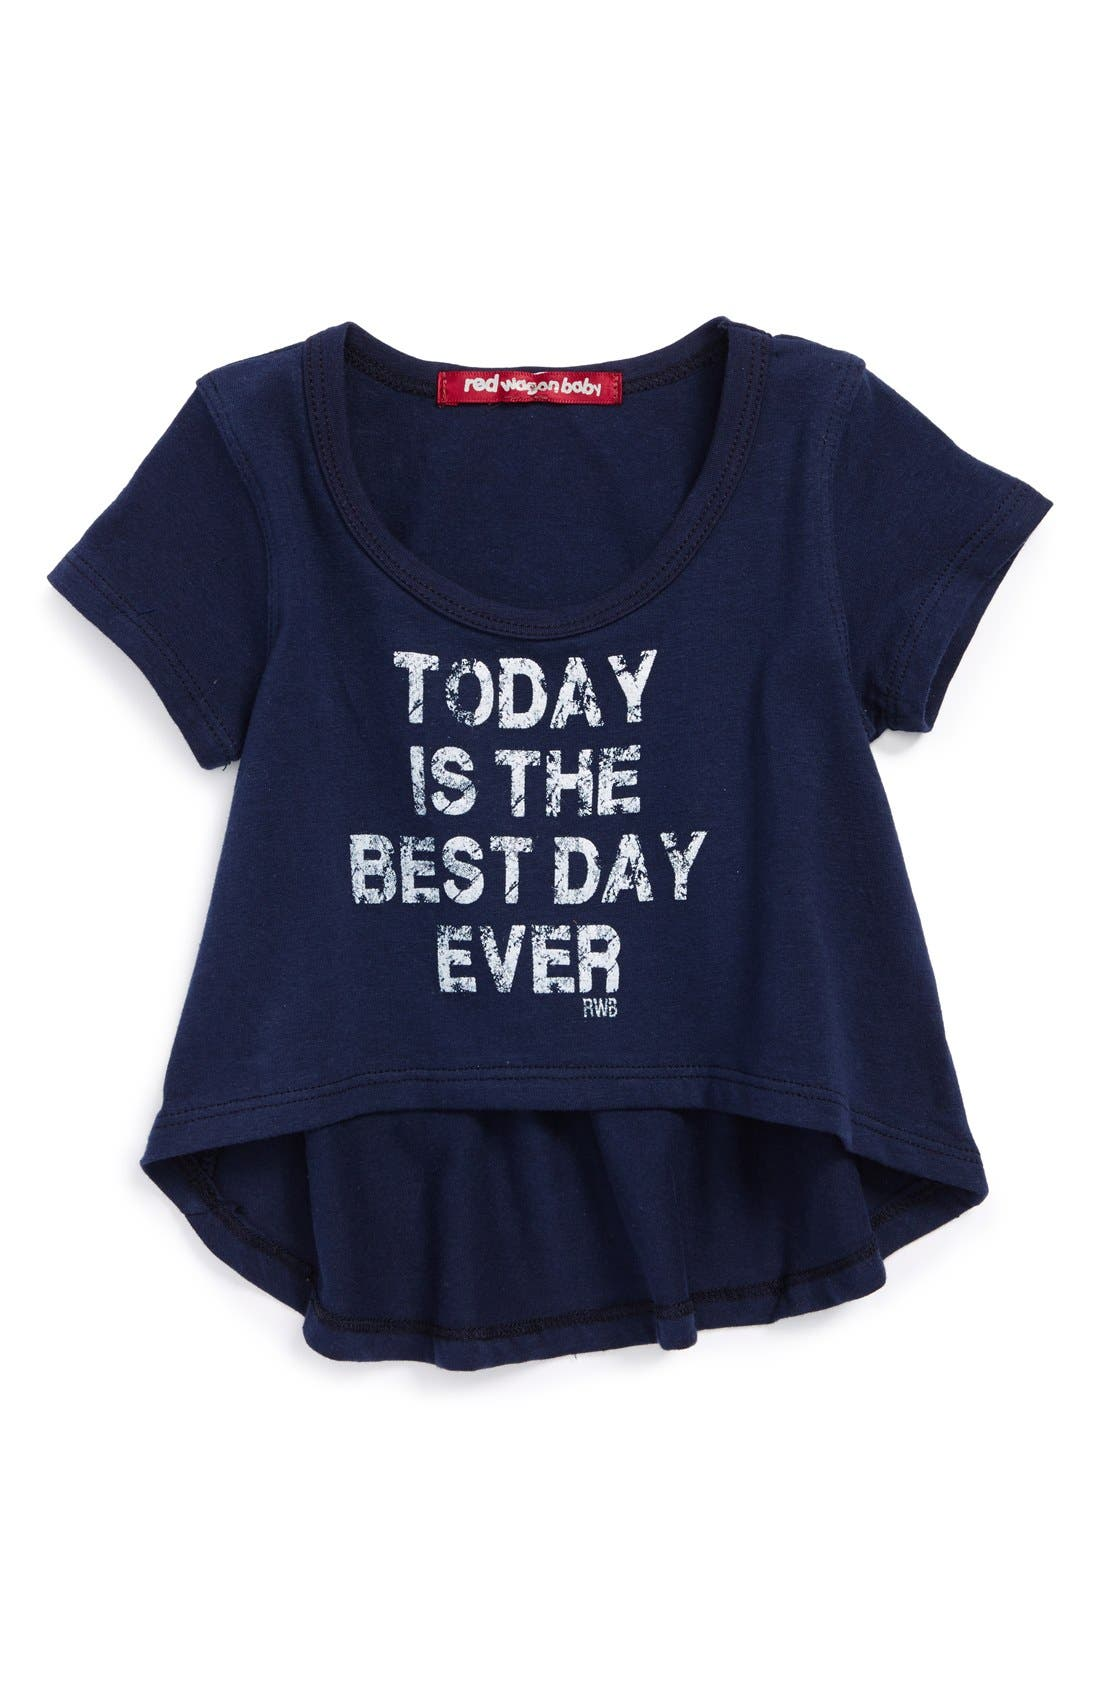 Main Image - Red Wagon Baby 'Today Is the Best Day Ever' High/Low Tee (Toddler Girls)